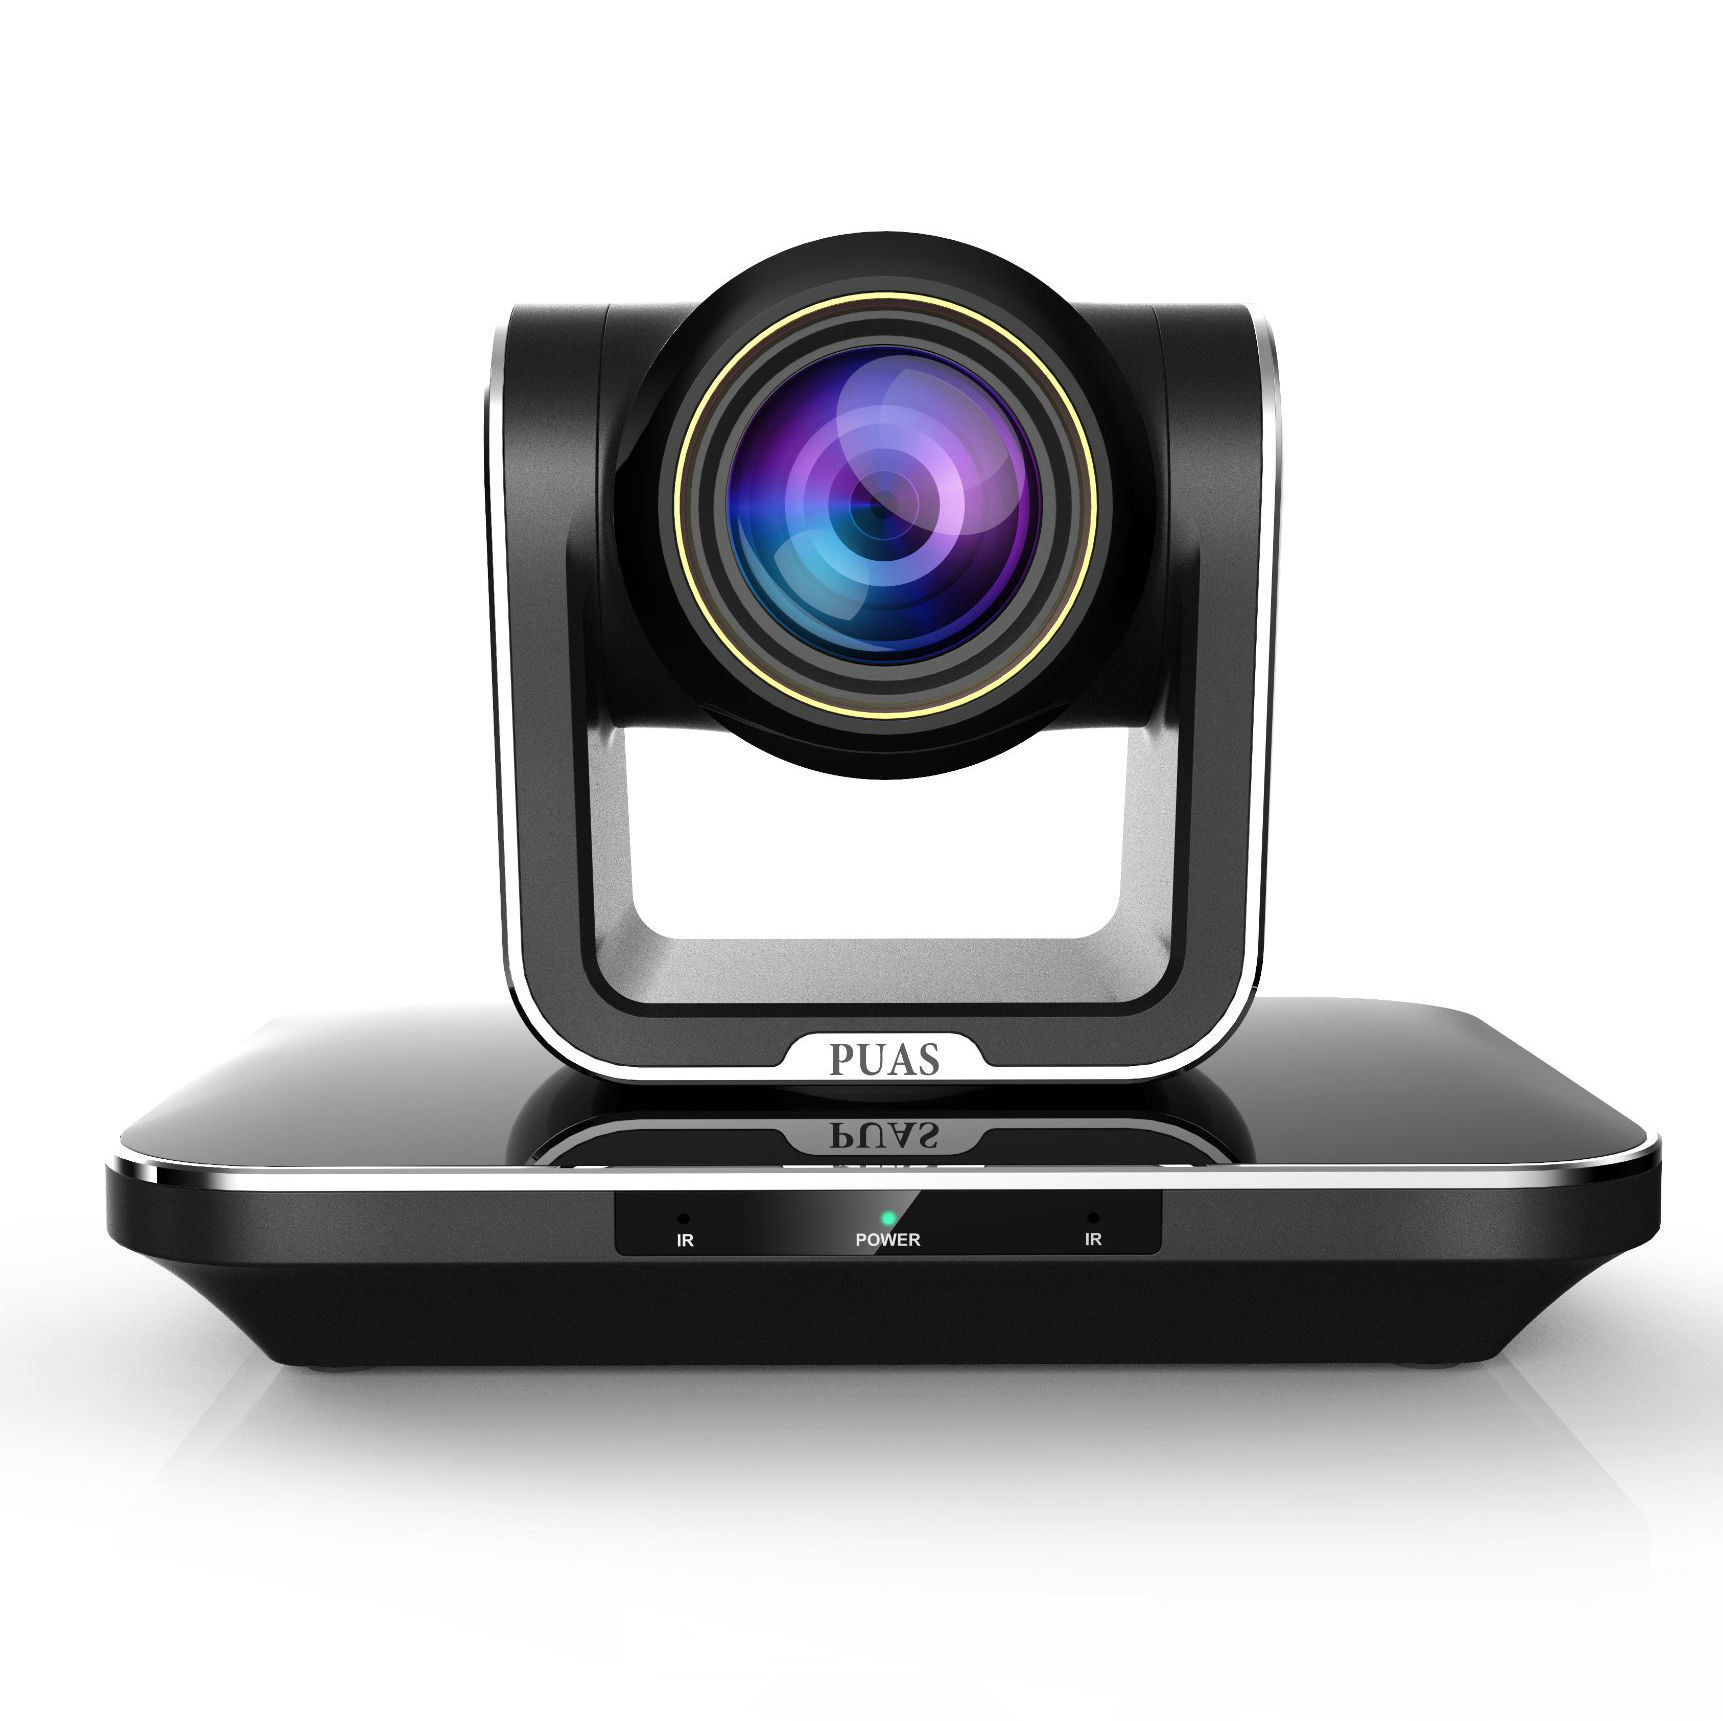 New 8.29MP 1080P60 4K Meeting Video Conference Camera for Conferencing Room (PUS-OHD312)